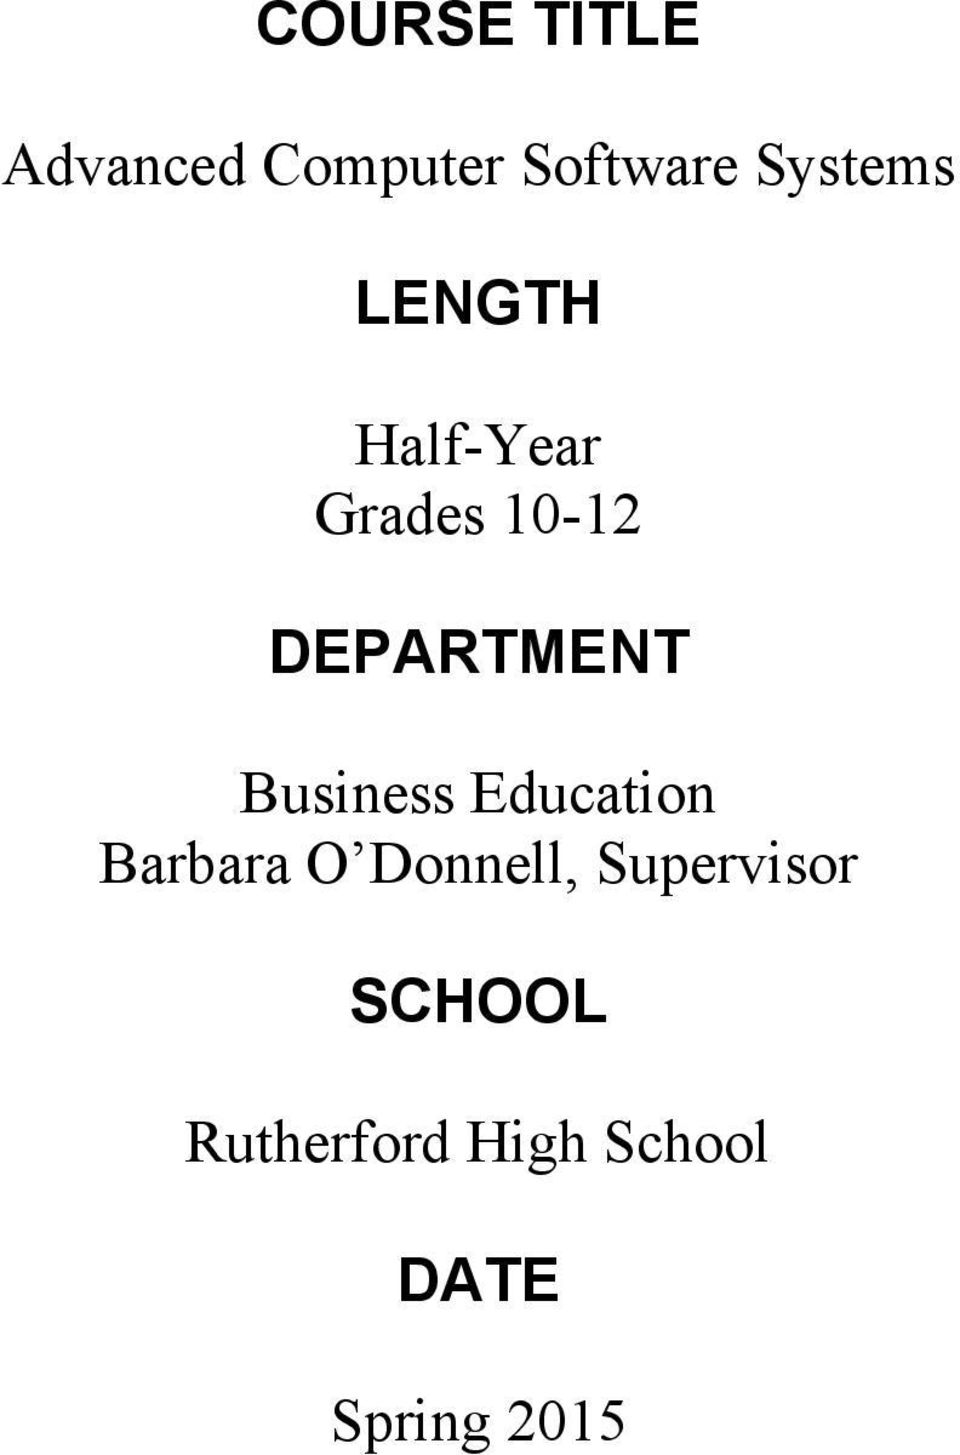 DEPARTMENT Business Education Barbara O